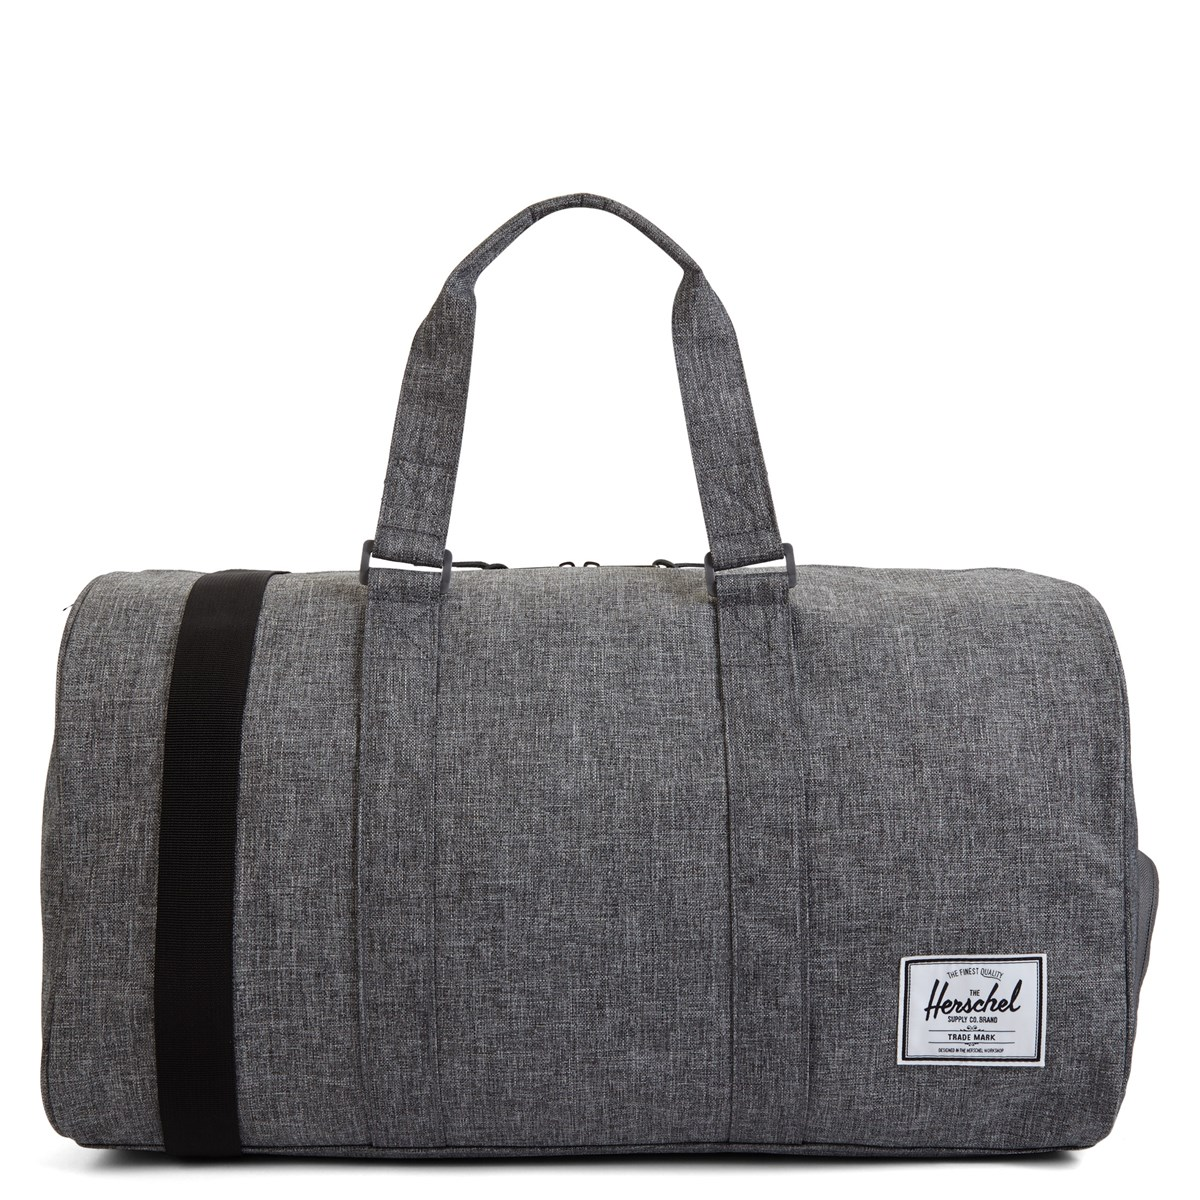 5e12fa82e960 Novel Weekender Duffle Bag in Dark Grey and Tan